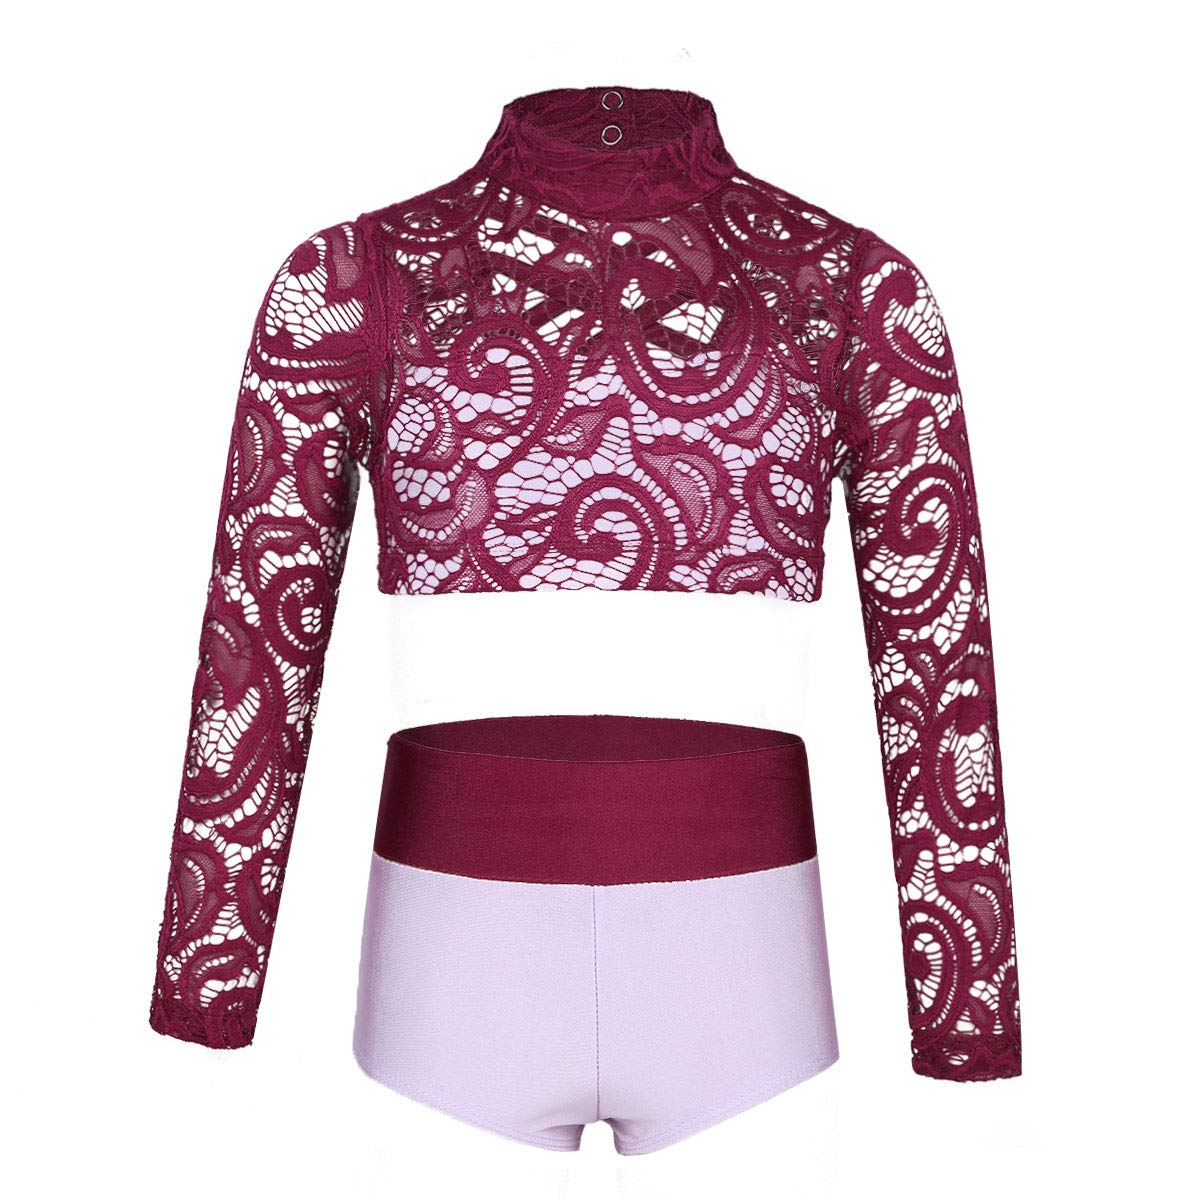 Yeahdor Girls Kids 2 Pieces Athletic Dance Outfits Long Sleeve Top with High Waisted Shorts for Dancing Workout Gymnastics